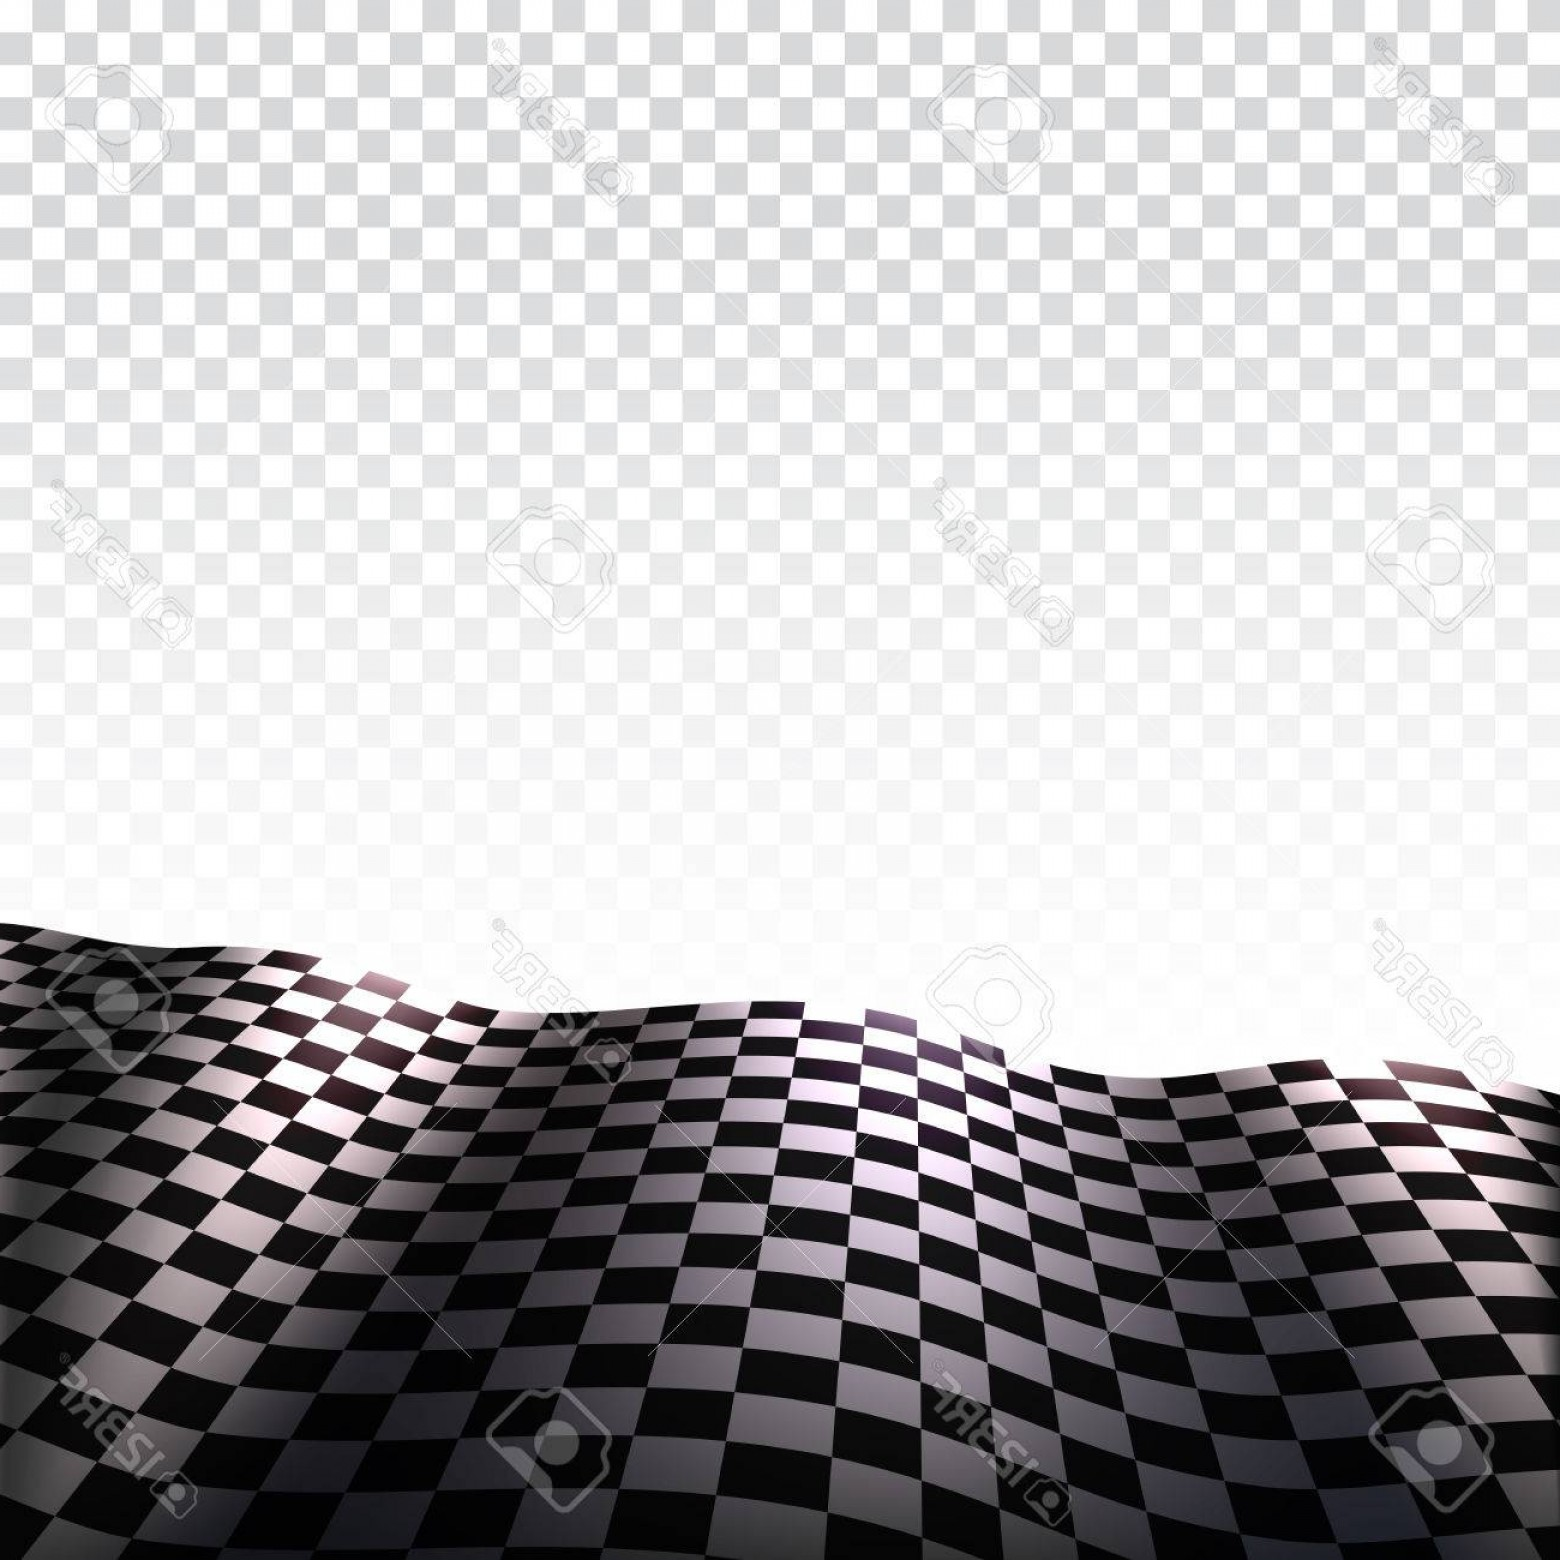 Checker Vector Template: Photostock Vector Checkered Flag On Transparent Background Sports Flag Of Black And White Squares With Place For Promo